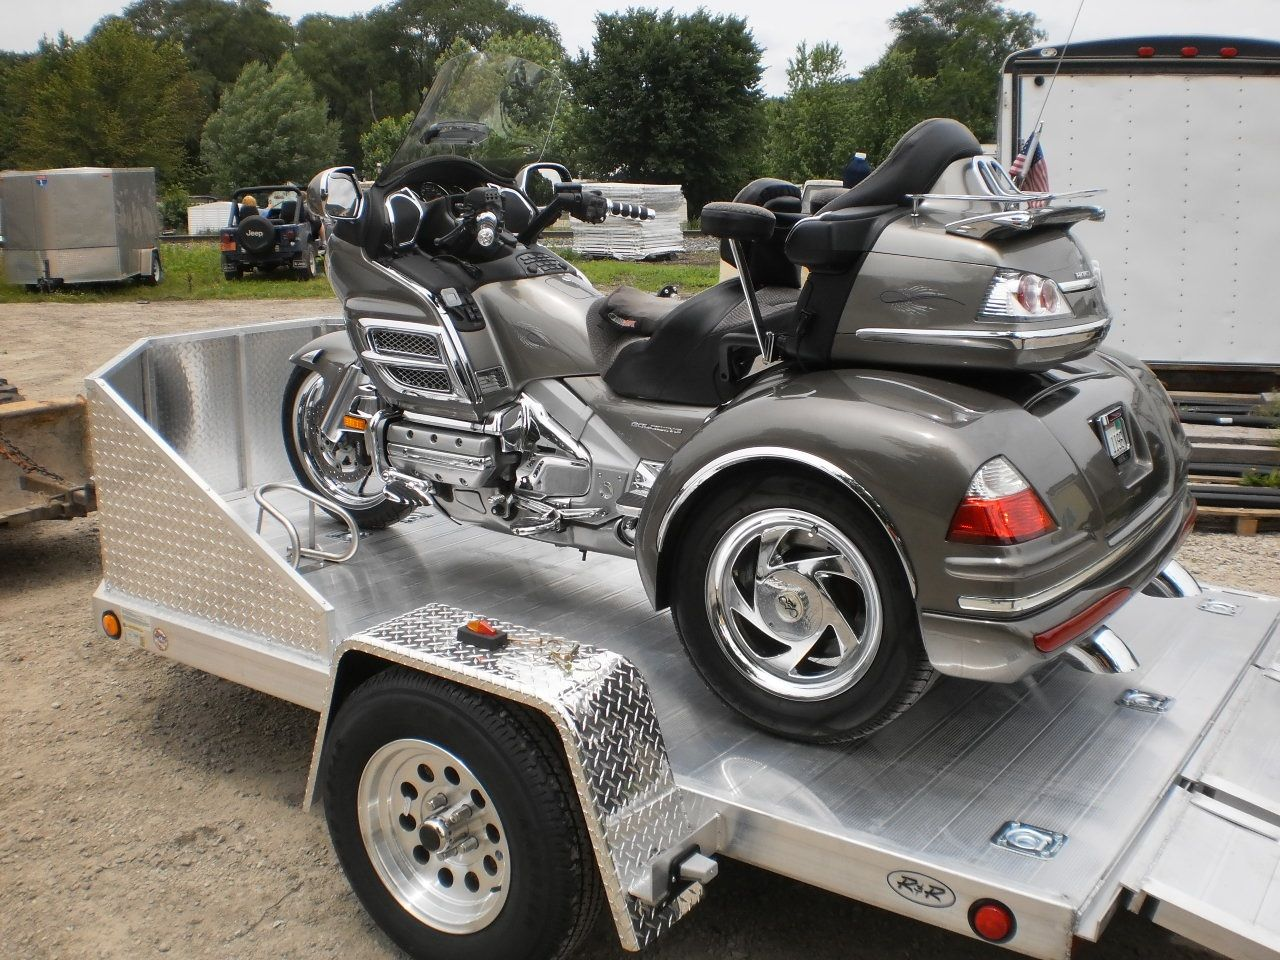 R and r all aluminum omc3 7 x 11 open motorcycle trailer r and p r and r all aluminum omc3 7 x 11 open motorcycle trailer sciox Choice Image